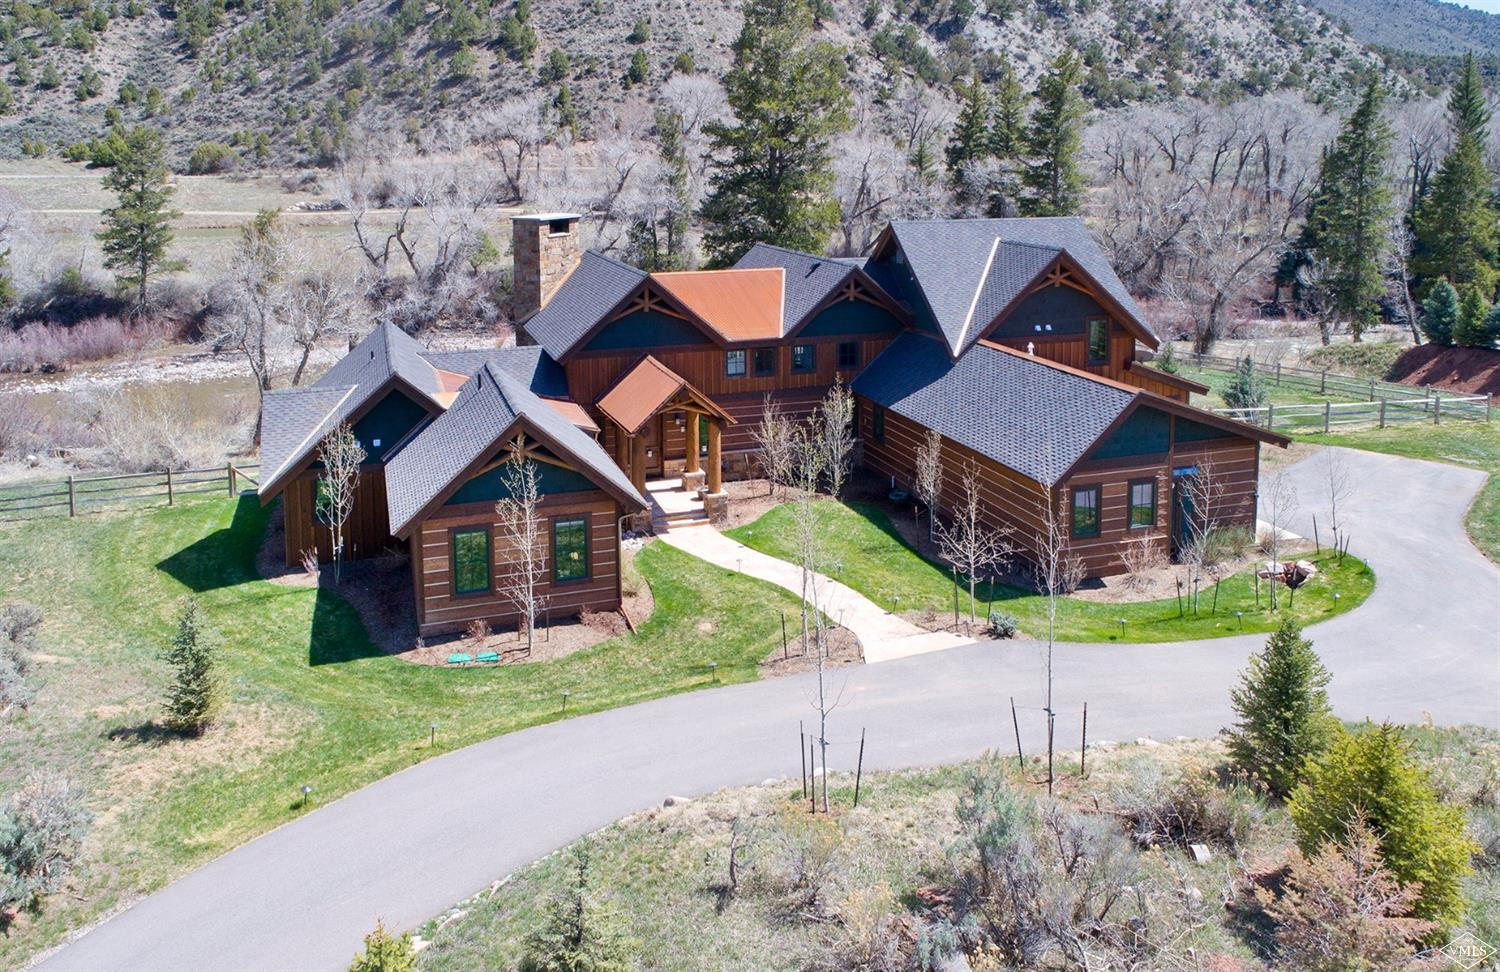 21850 Highway 6, Eagle, Co 81631 Property Photo